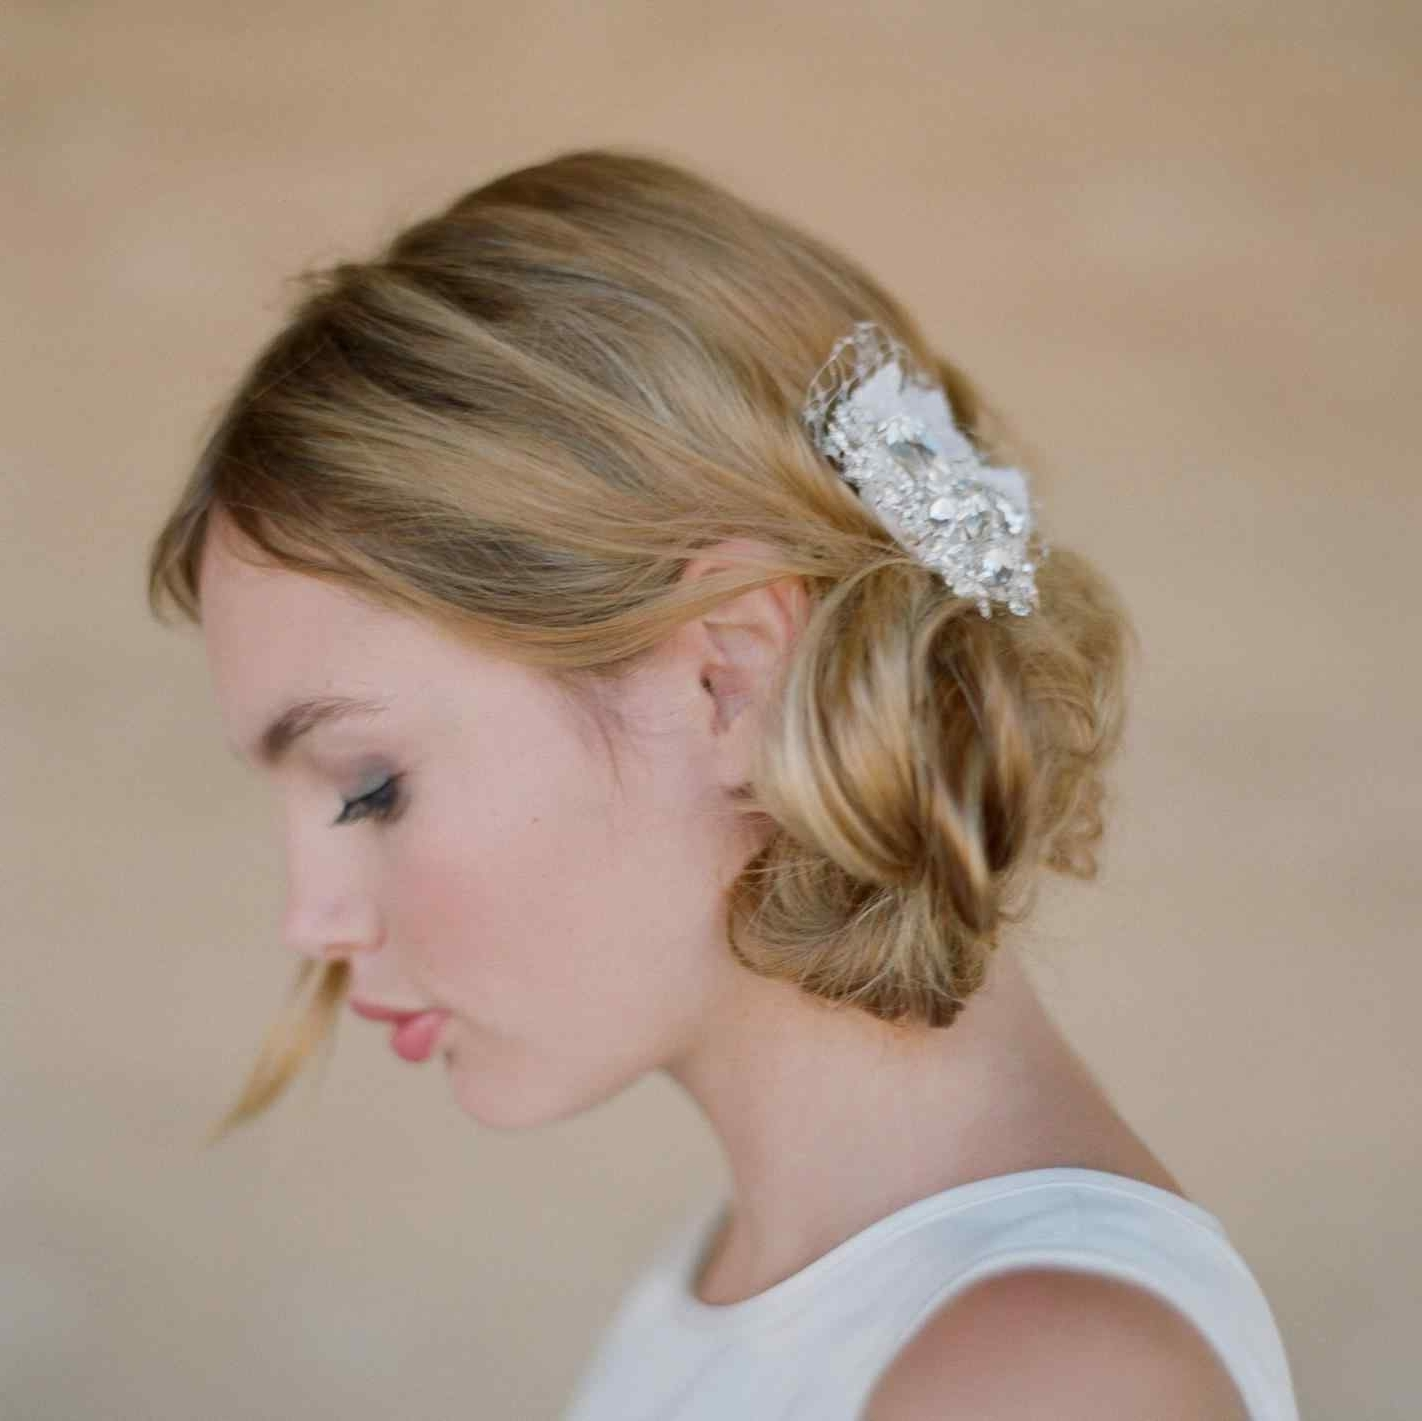 Vintage Wedding Hairstyles For Medium Length Hair For Medium Length In Most Current Vintage Wedding Hairstyles For Medium Length Hair (View 14 of 15)